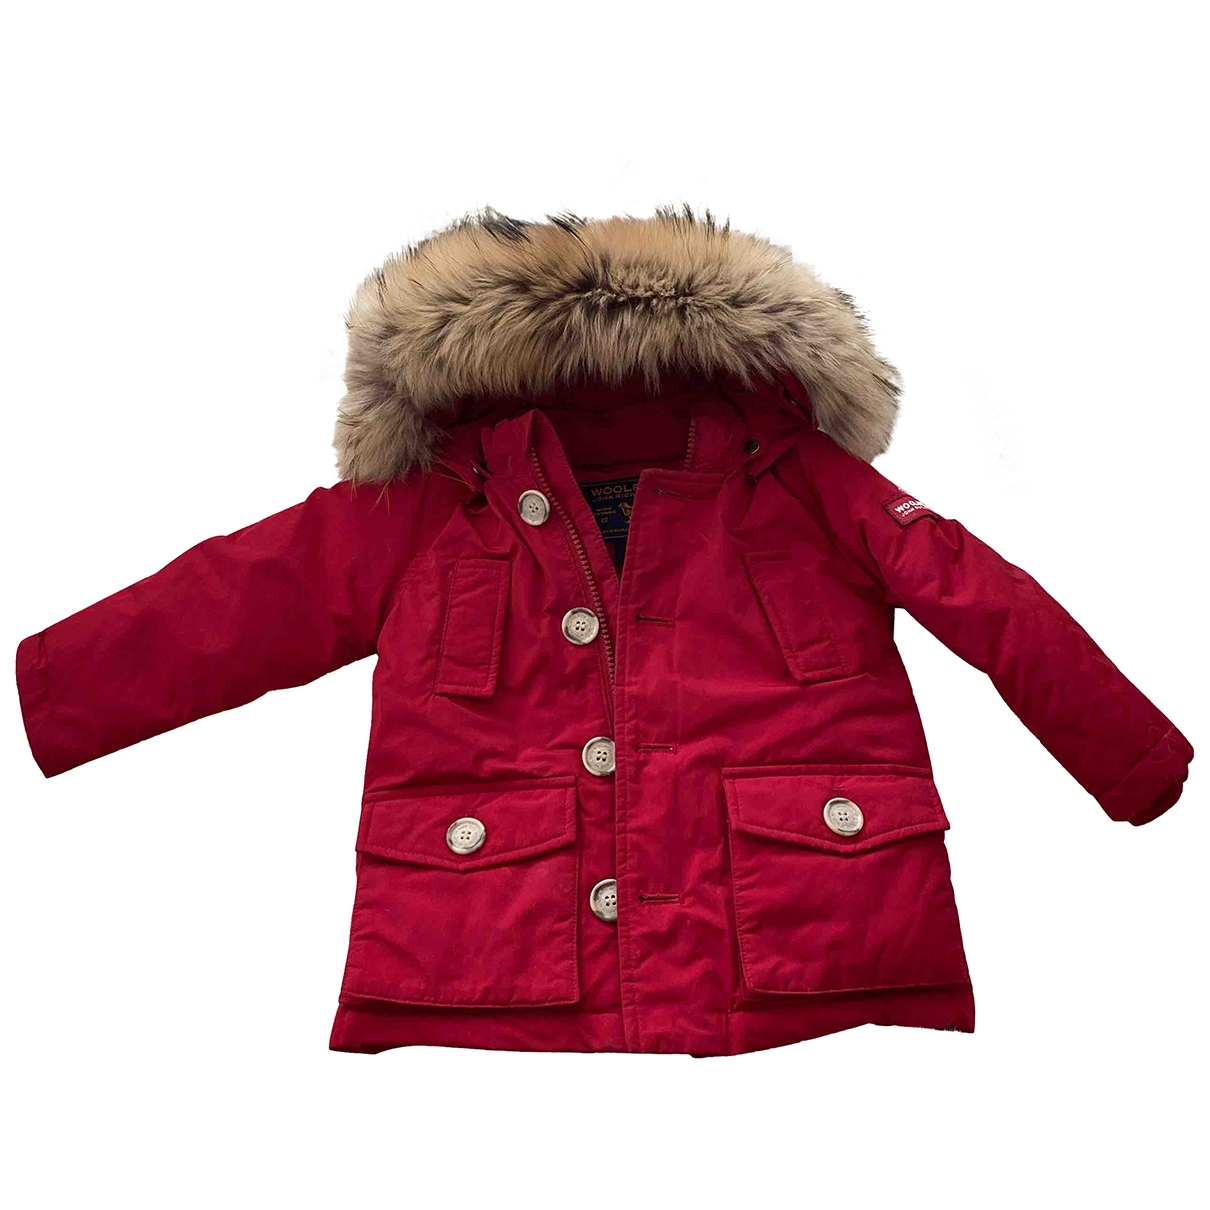 Woolrich \N Red jacket & coat for Kids 12 months - up to 74cm FR